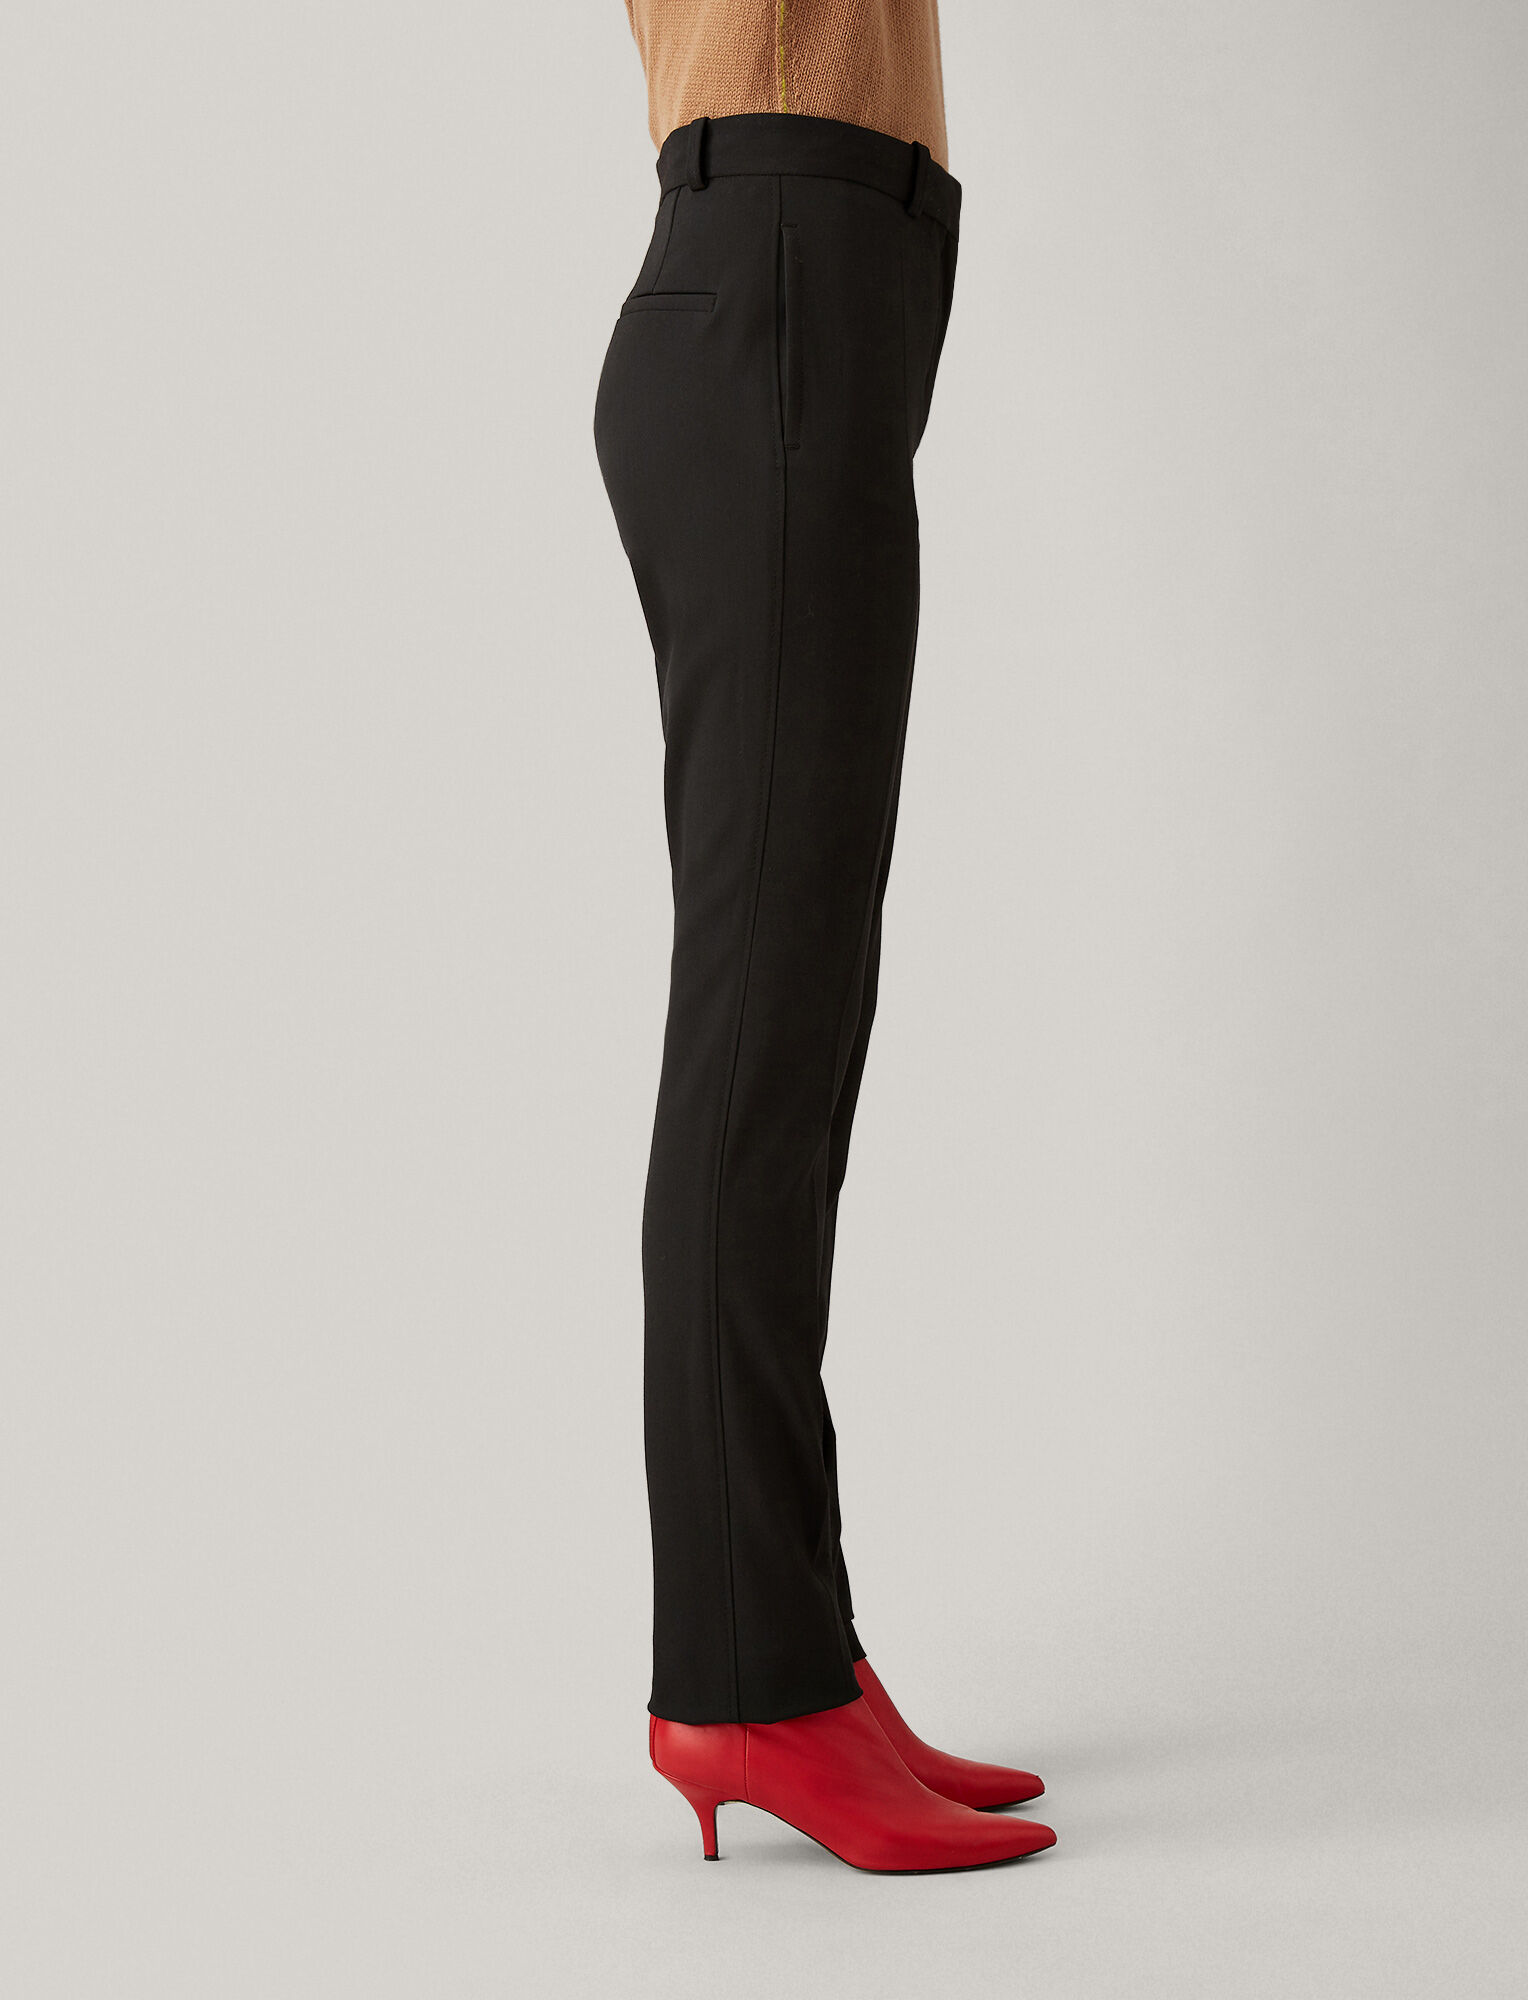 Joseph, Zoran Comfort Wool Trousers, in BLACK